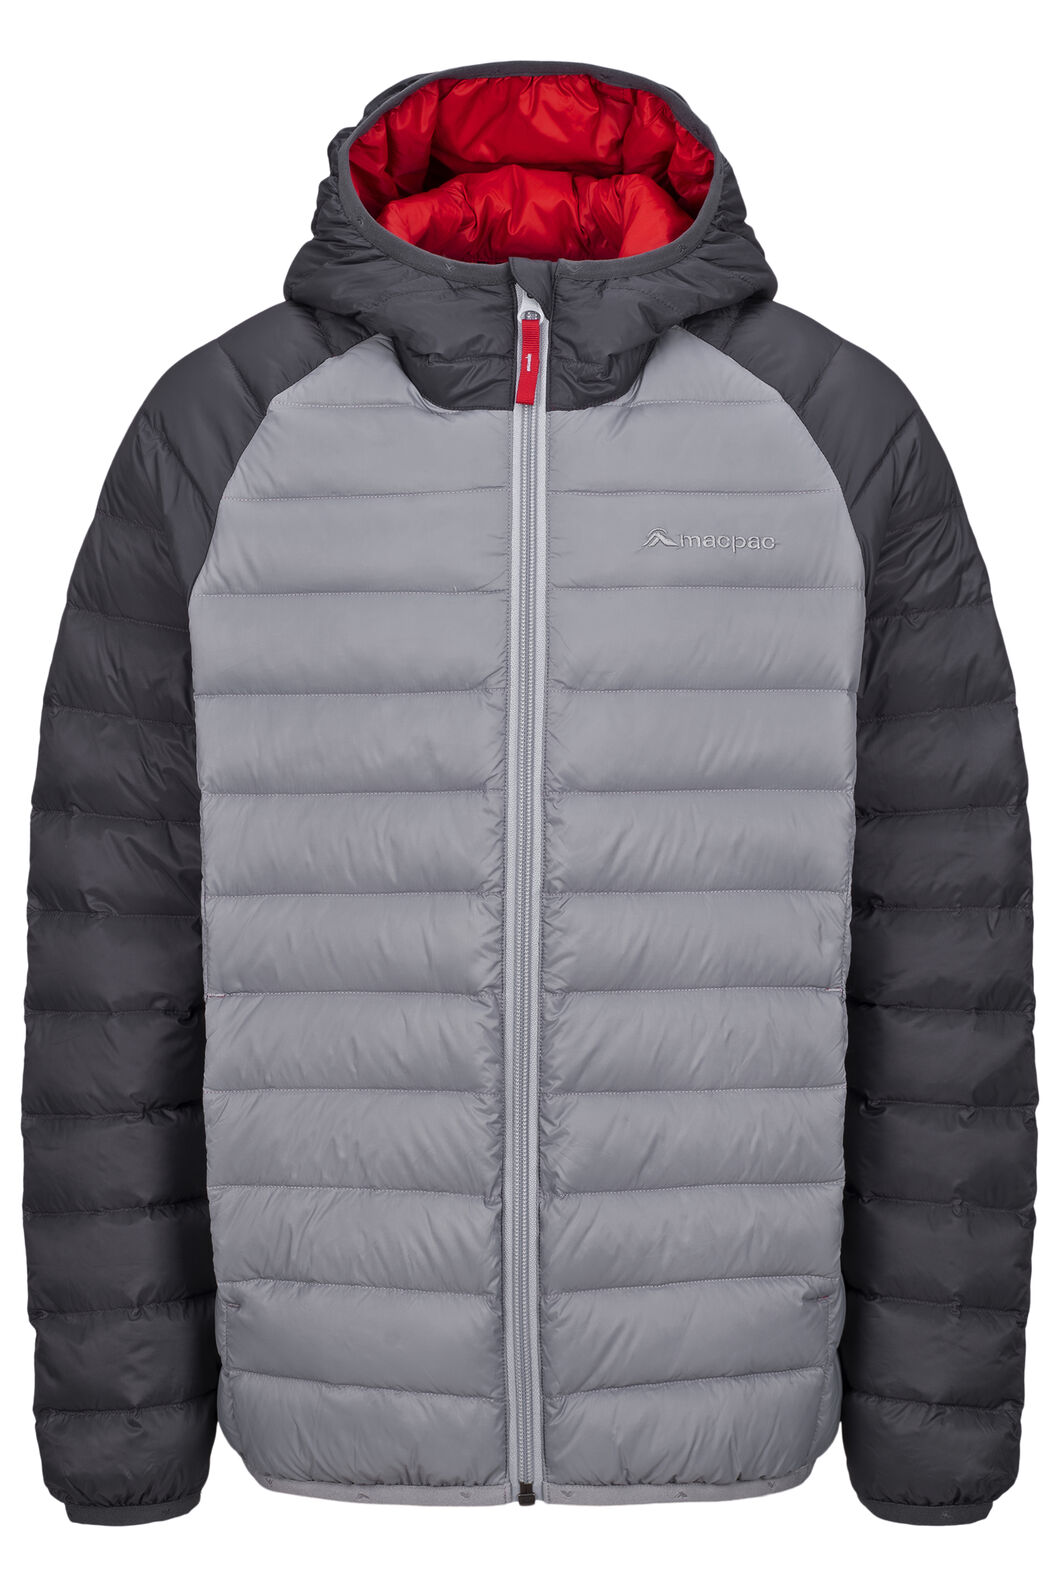 Macpac Uber Light Hooded Down Jacket — Kids', Asphalt/Monument, hi-res